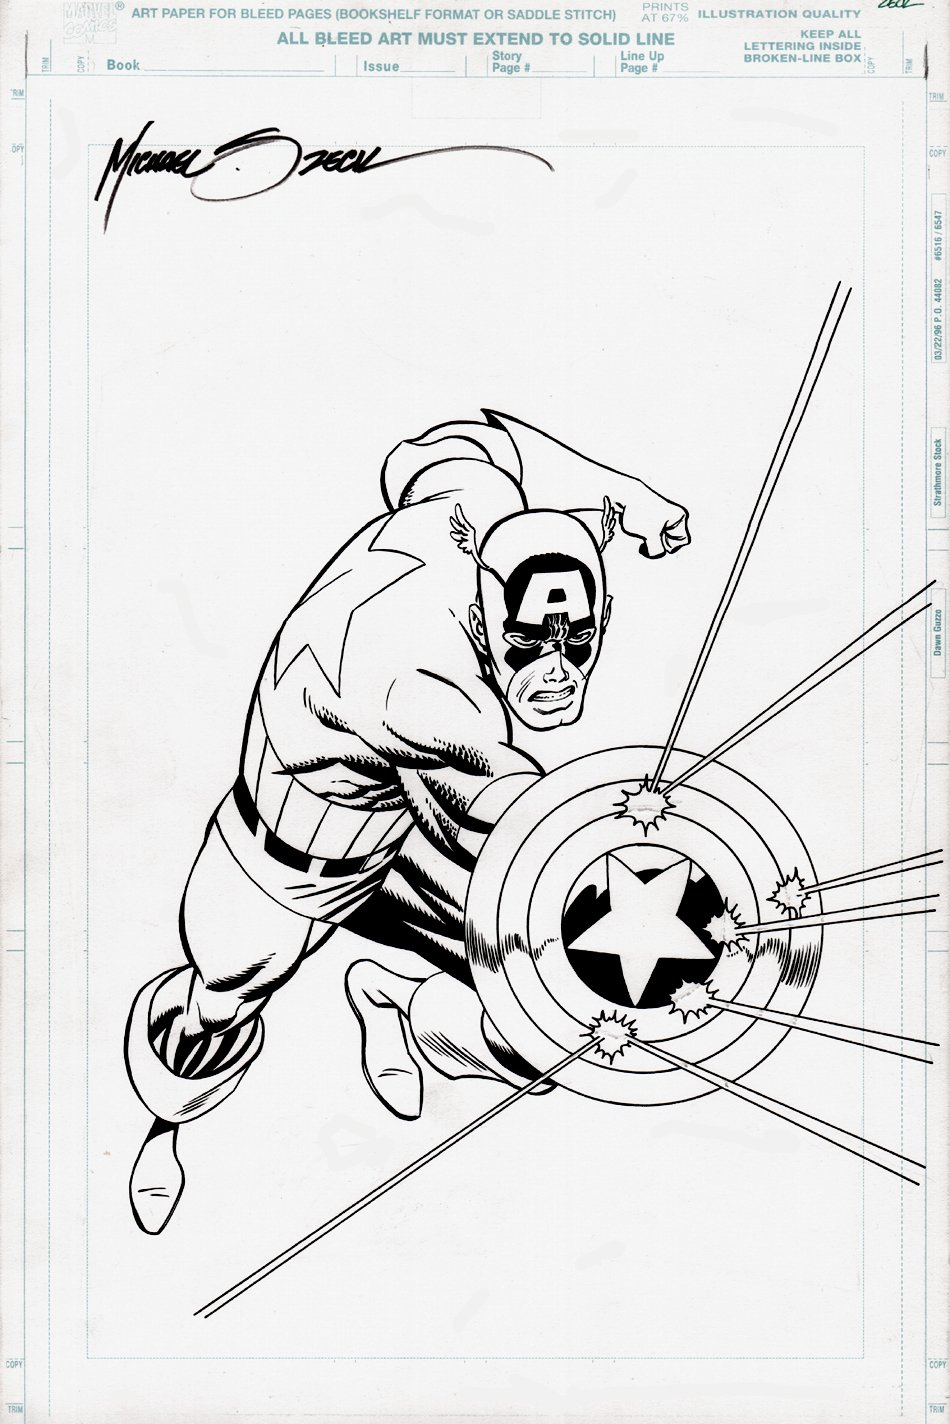 Captain America Published Pinup Used For T-Shirt Design! (1990)